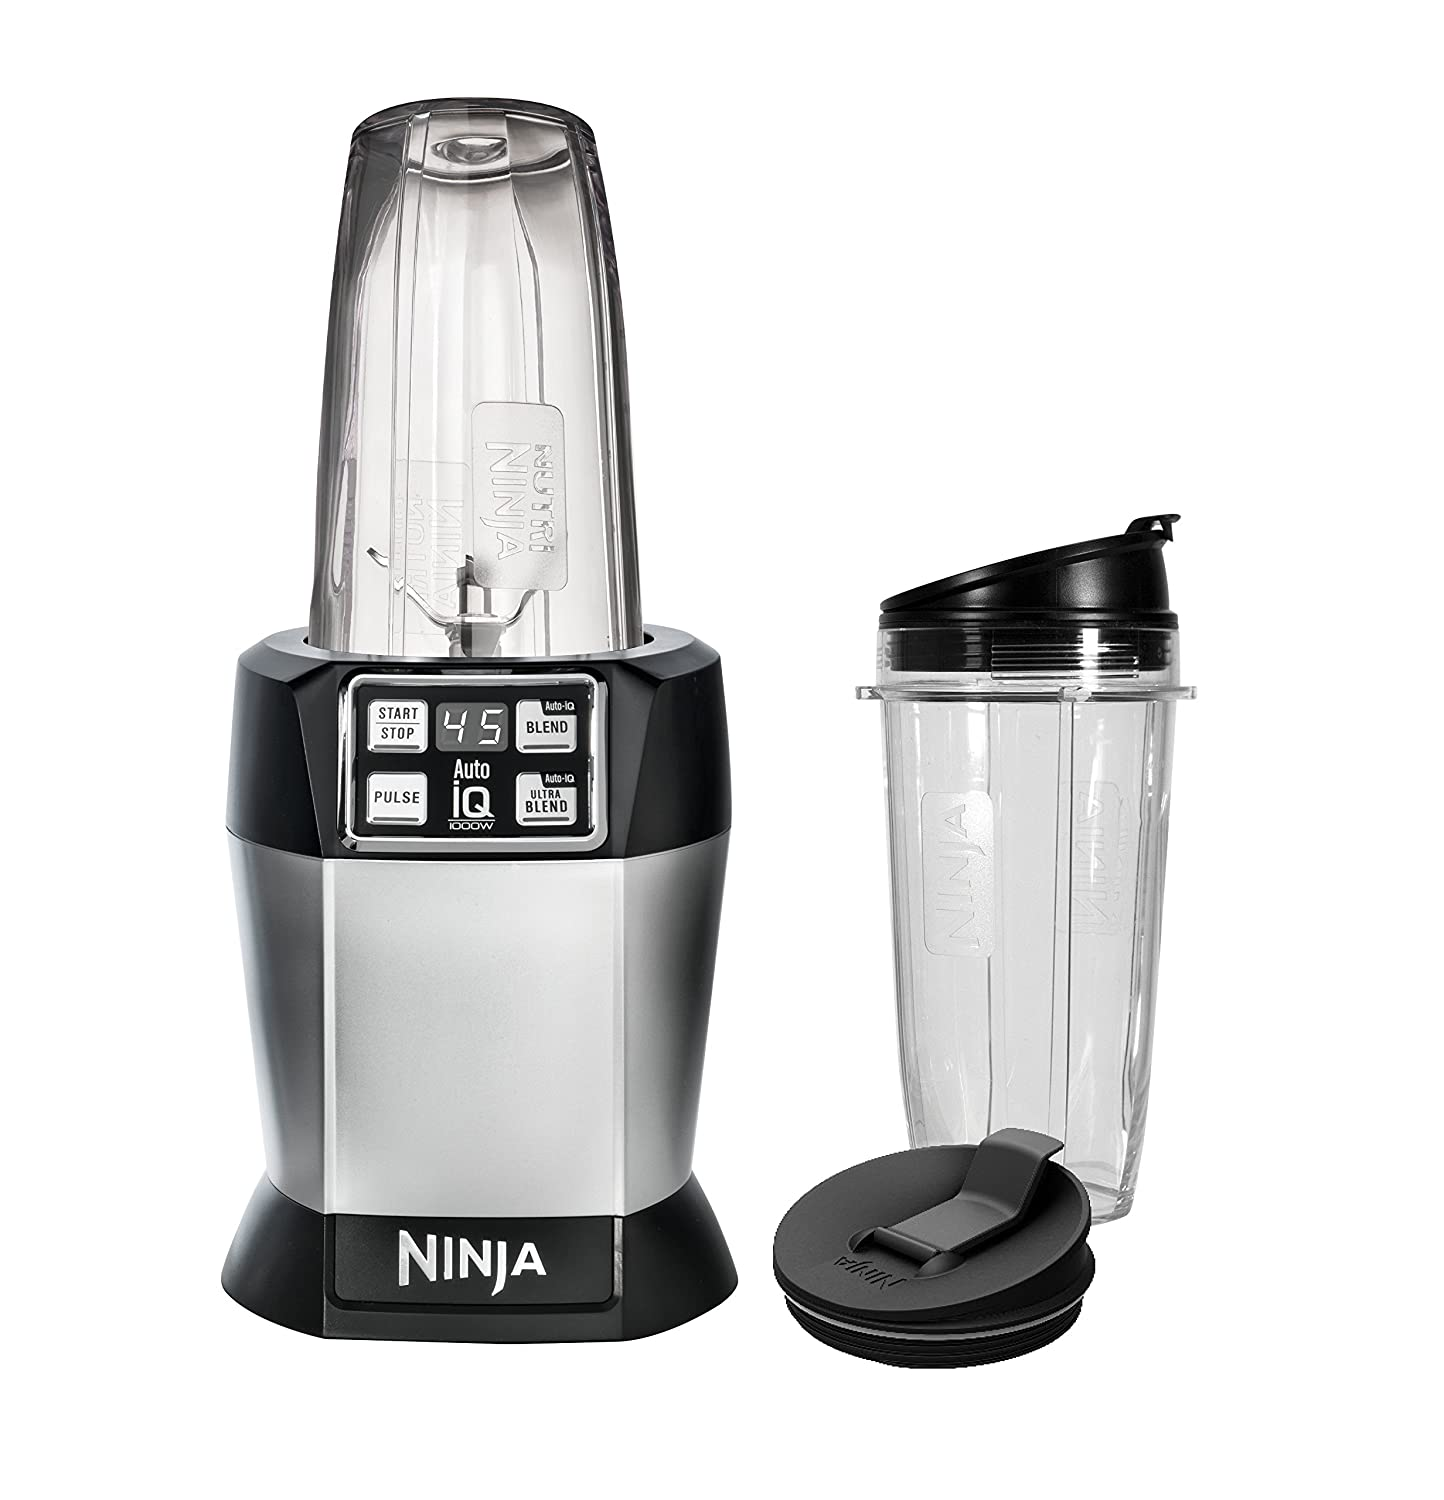 Ninja BL480D Nutri Ninja with 1000 Watt Auto-IQ Base for Juices, Shakes Smoothies Personal Blender 18 and 24 oz. Black Silver